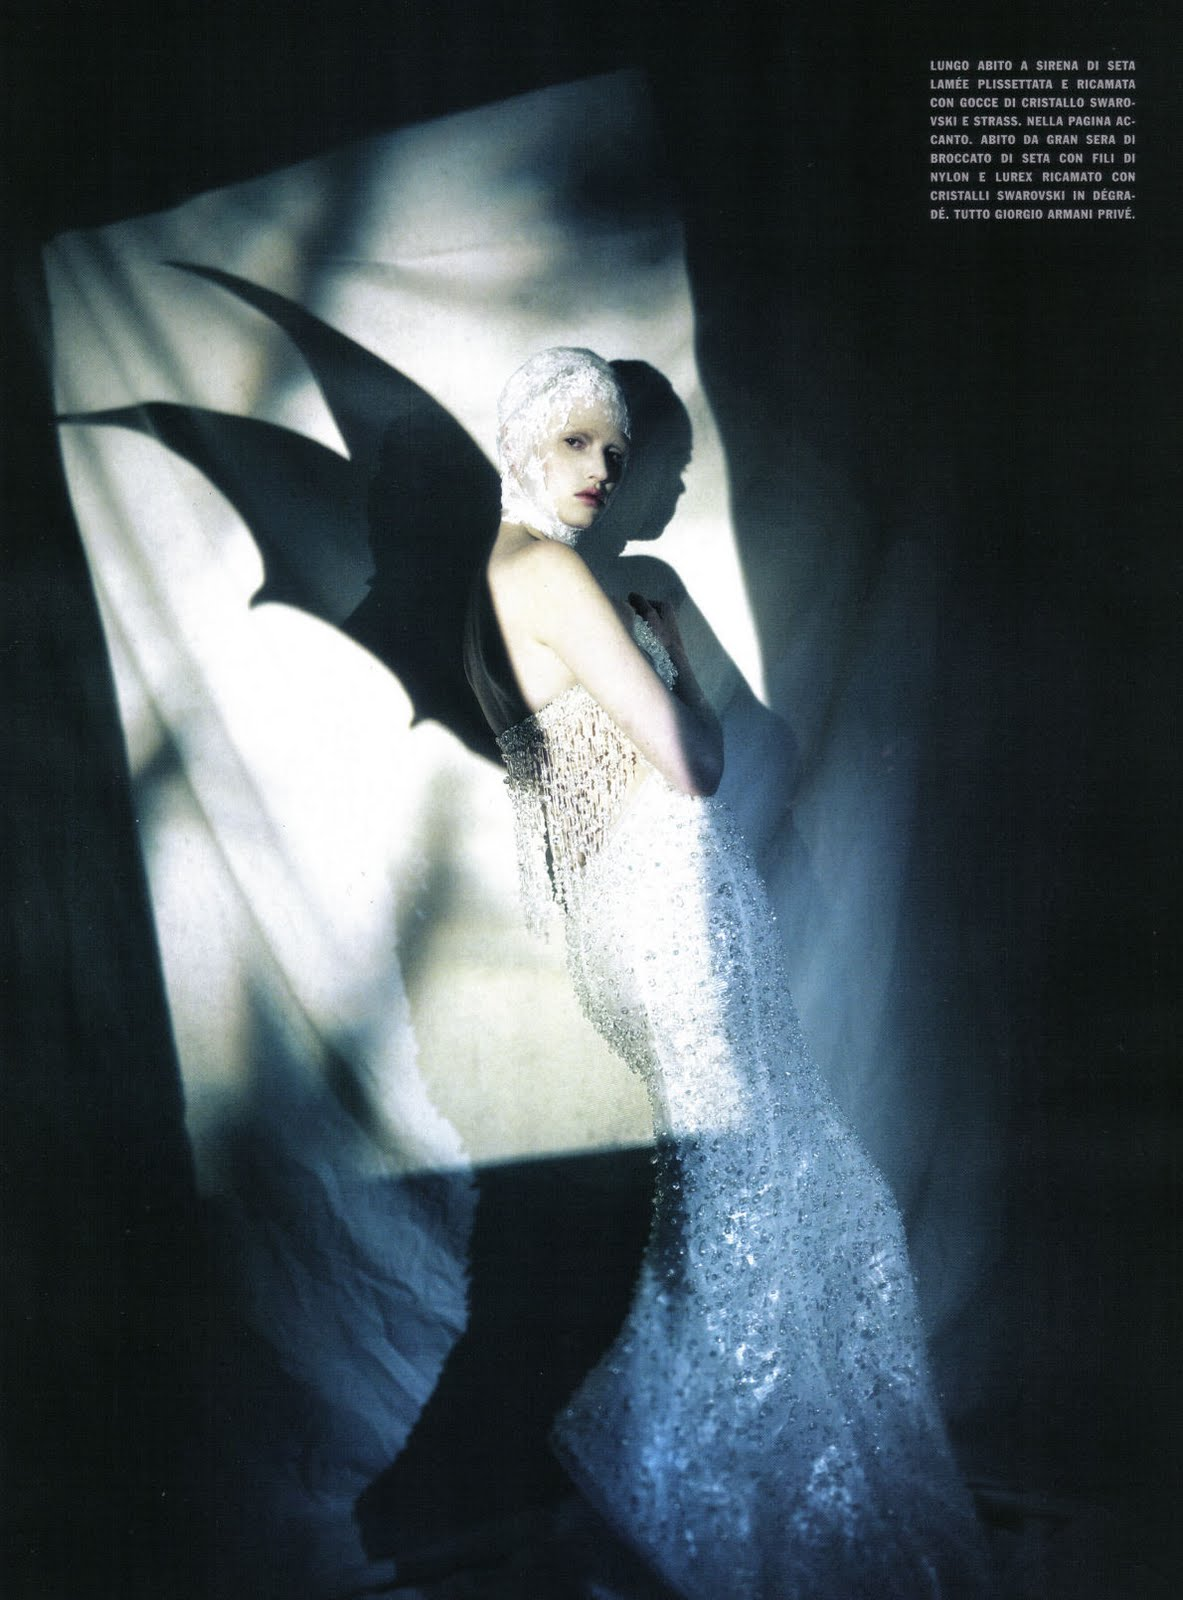 Lara Stone in The great illusion | Vogue Italia March 2010 (photography: Paolo Roversi, styling: Olivier Rizzo)